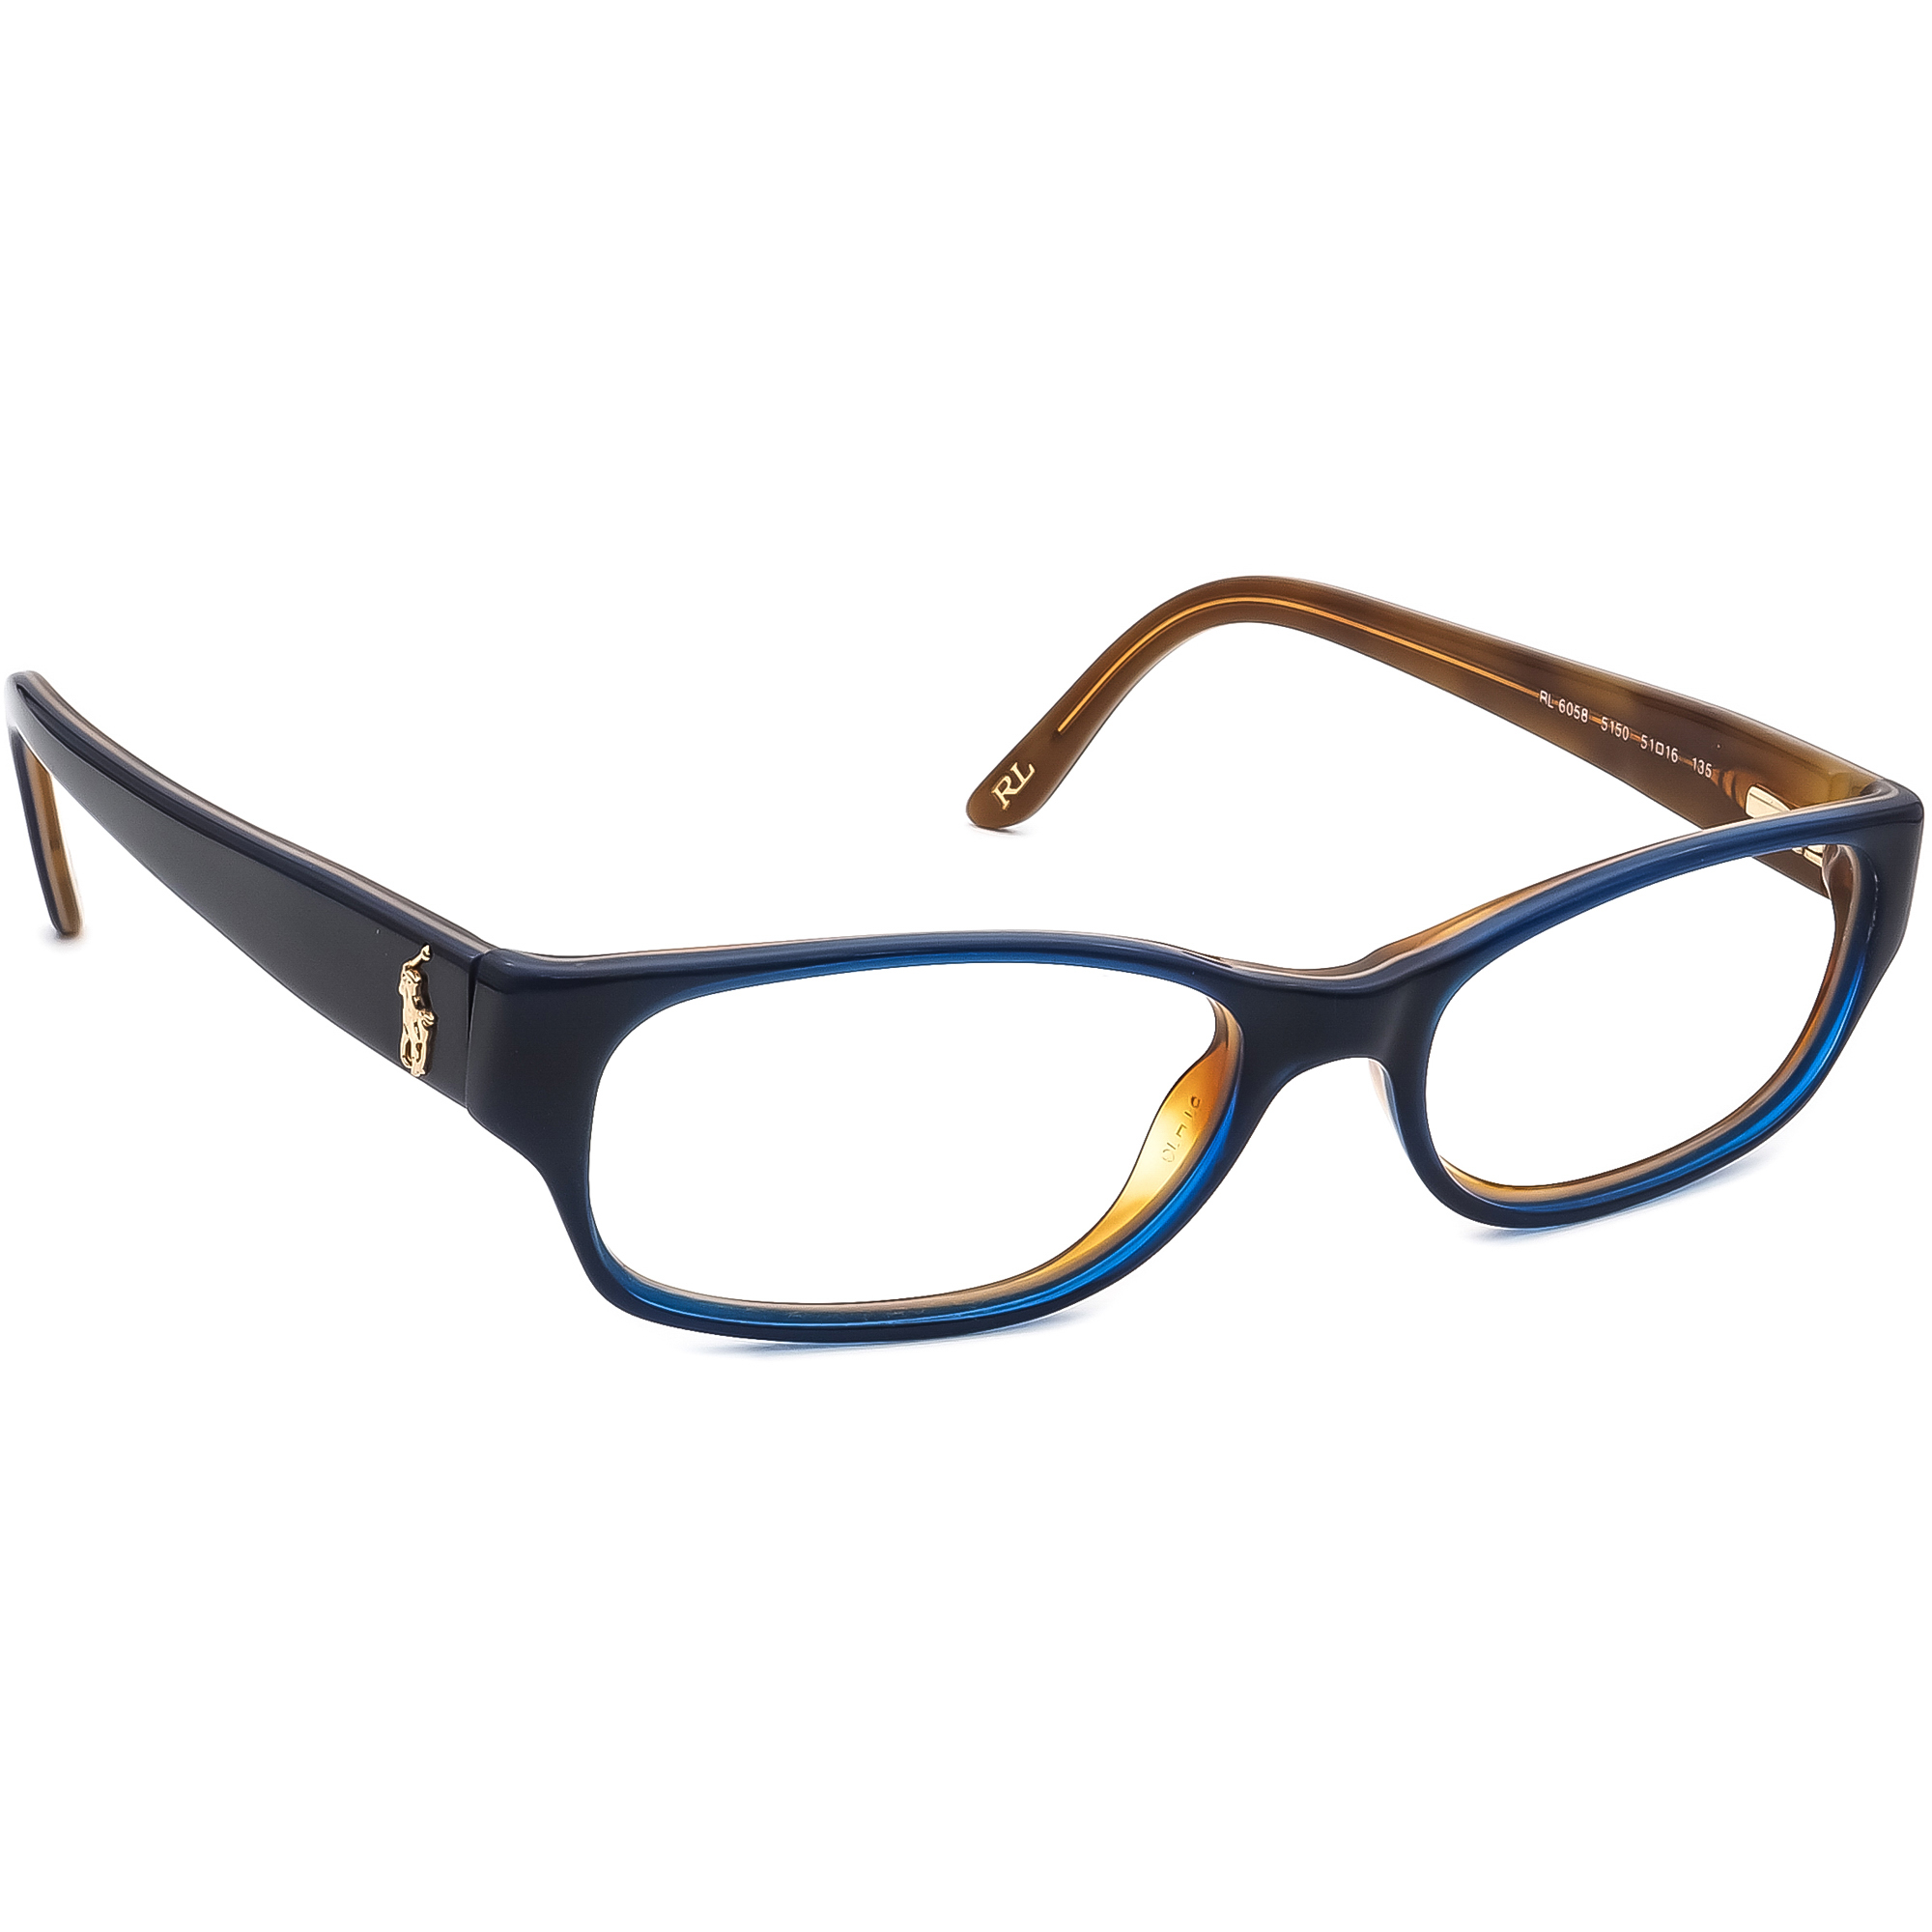 Ralph Lauren Polo Eyeglasses RL6058 5150 Dark Blue/Brown Frame Italy 51[]16 135